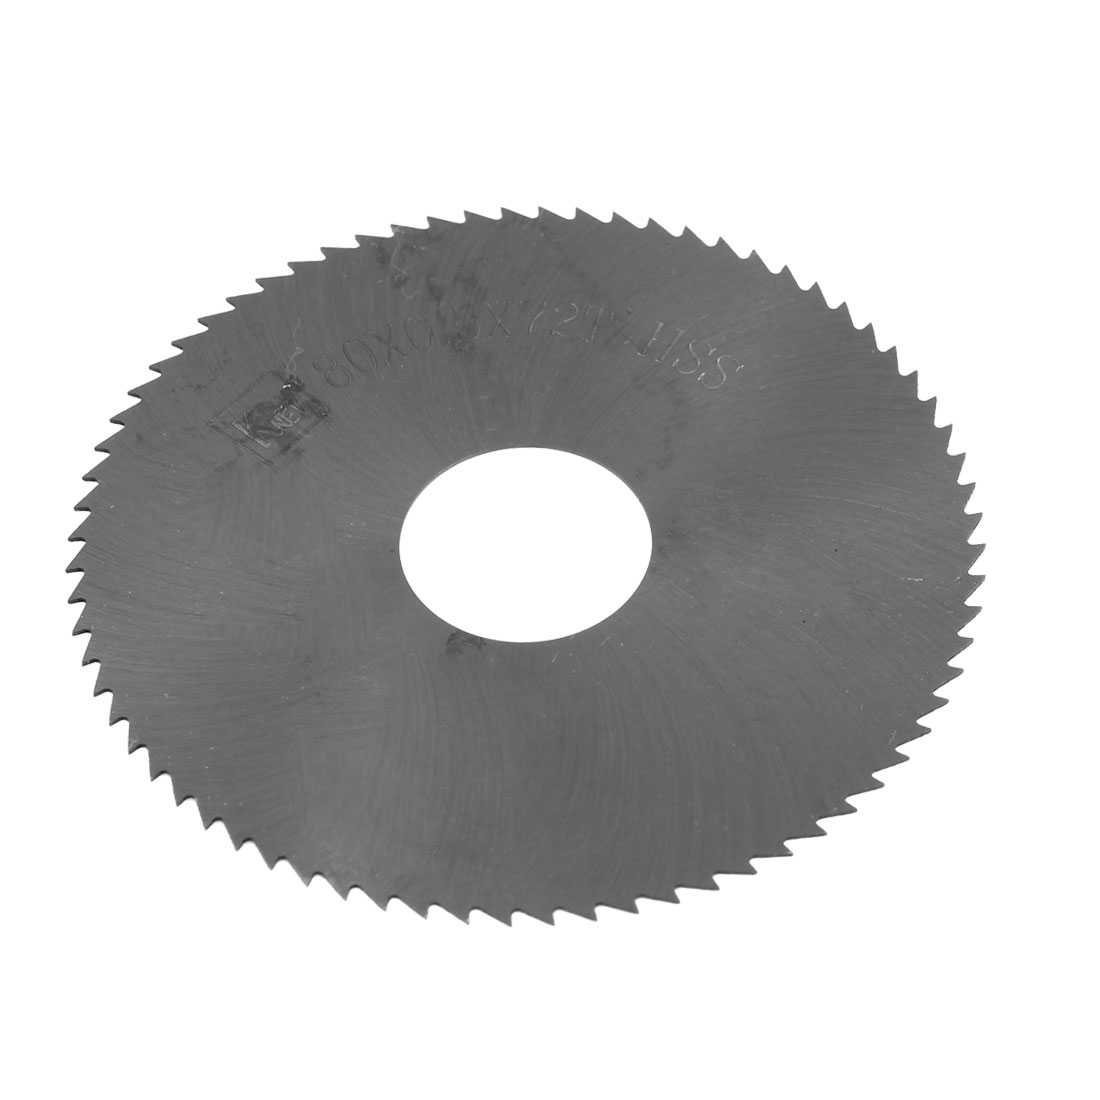 Unique Bargains 8cm x 0.05cm x 2.2cm 72 Teeth HSS Slitting Saw Blade Cutting Tool